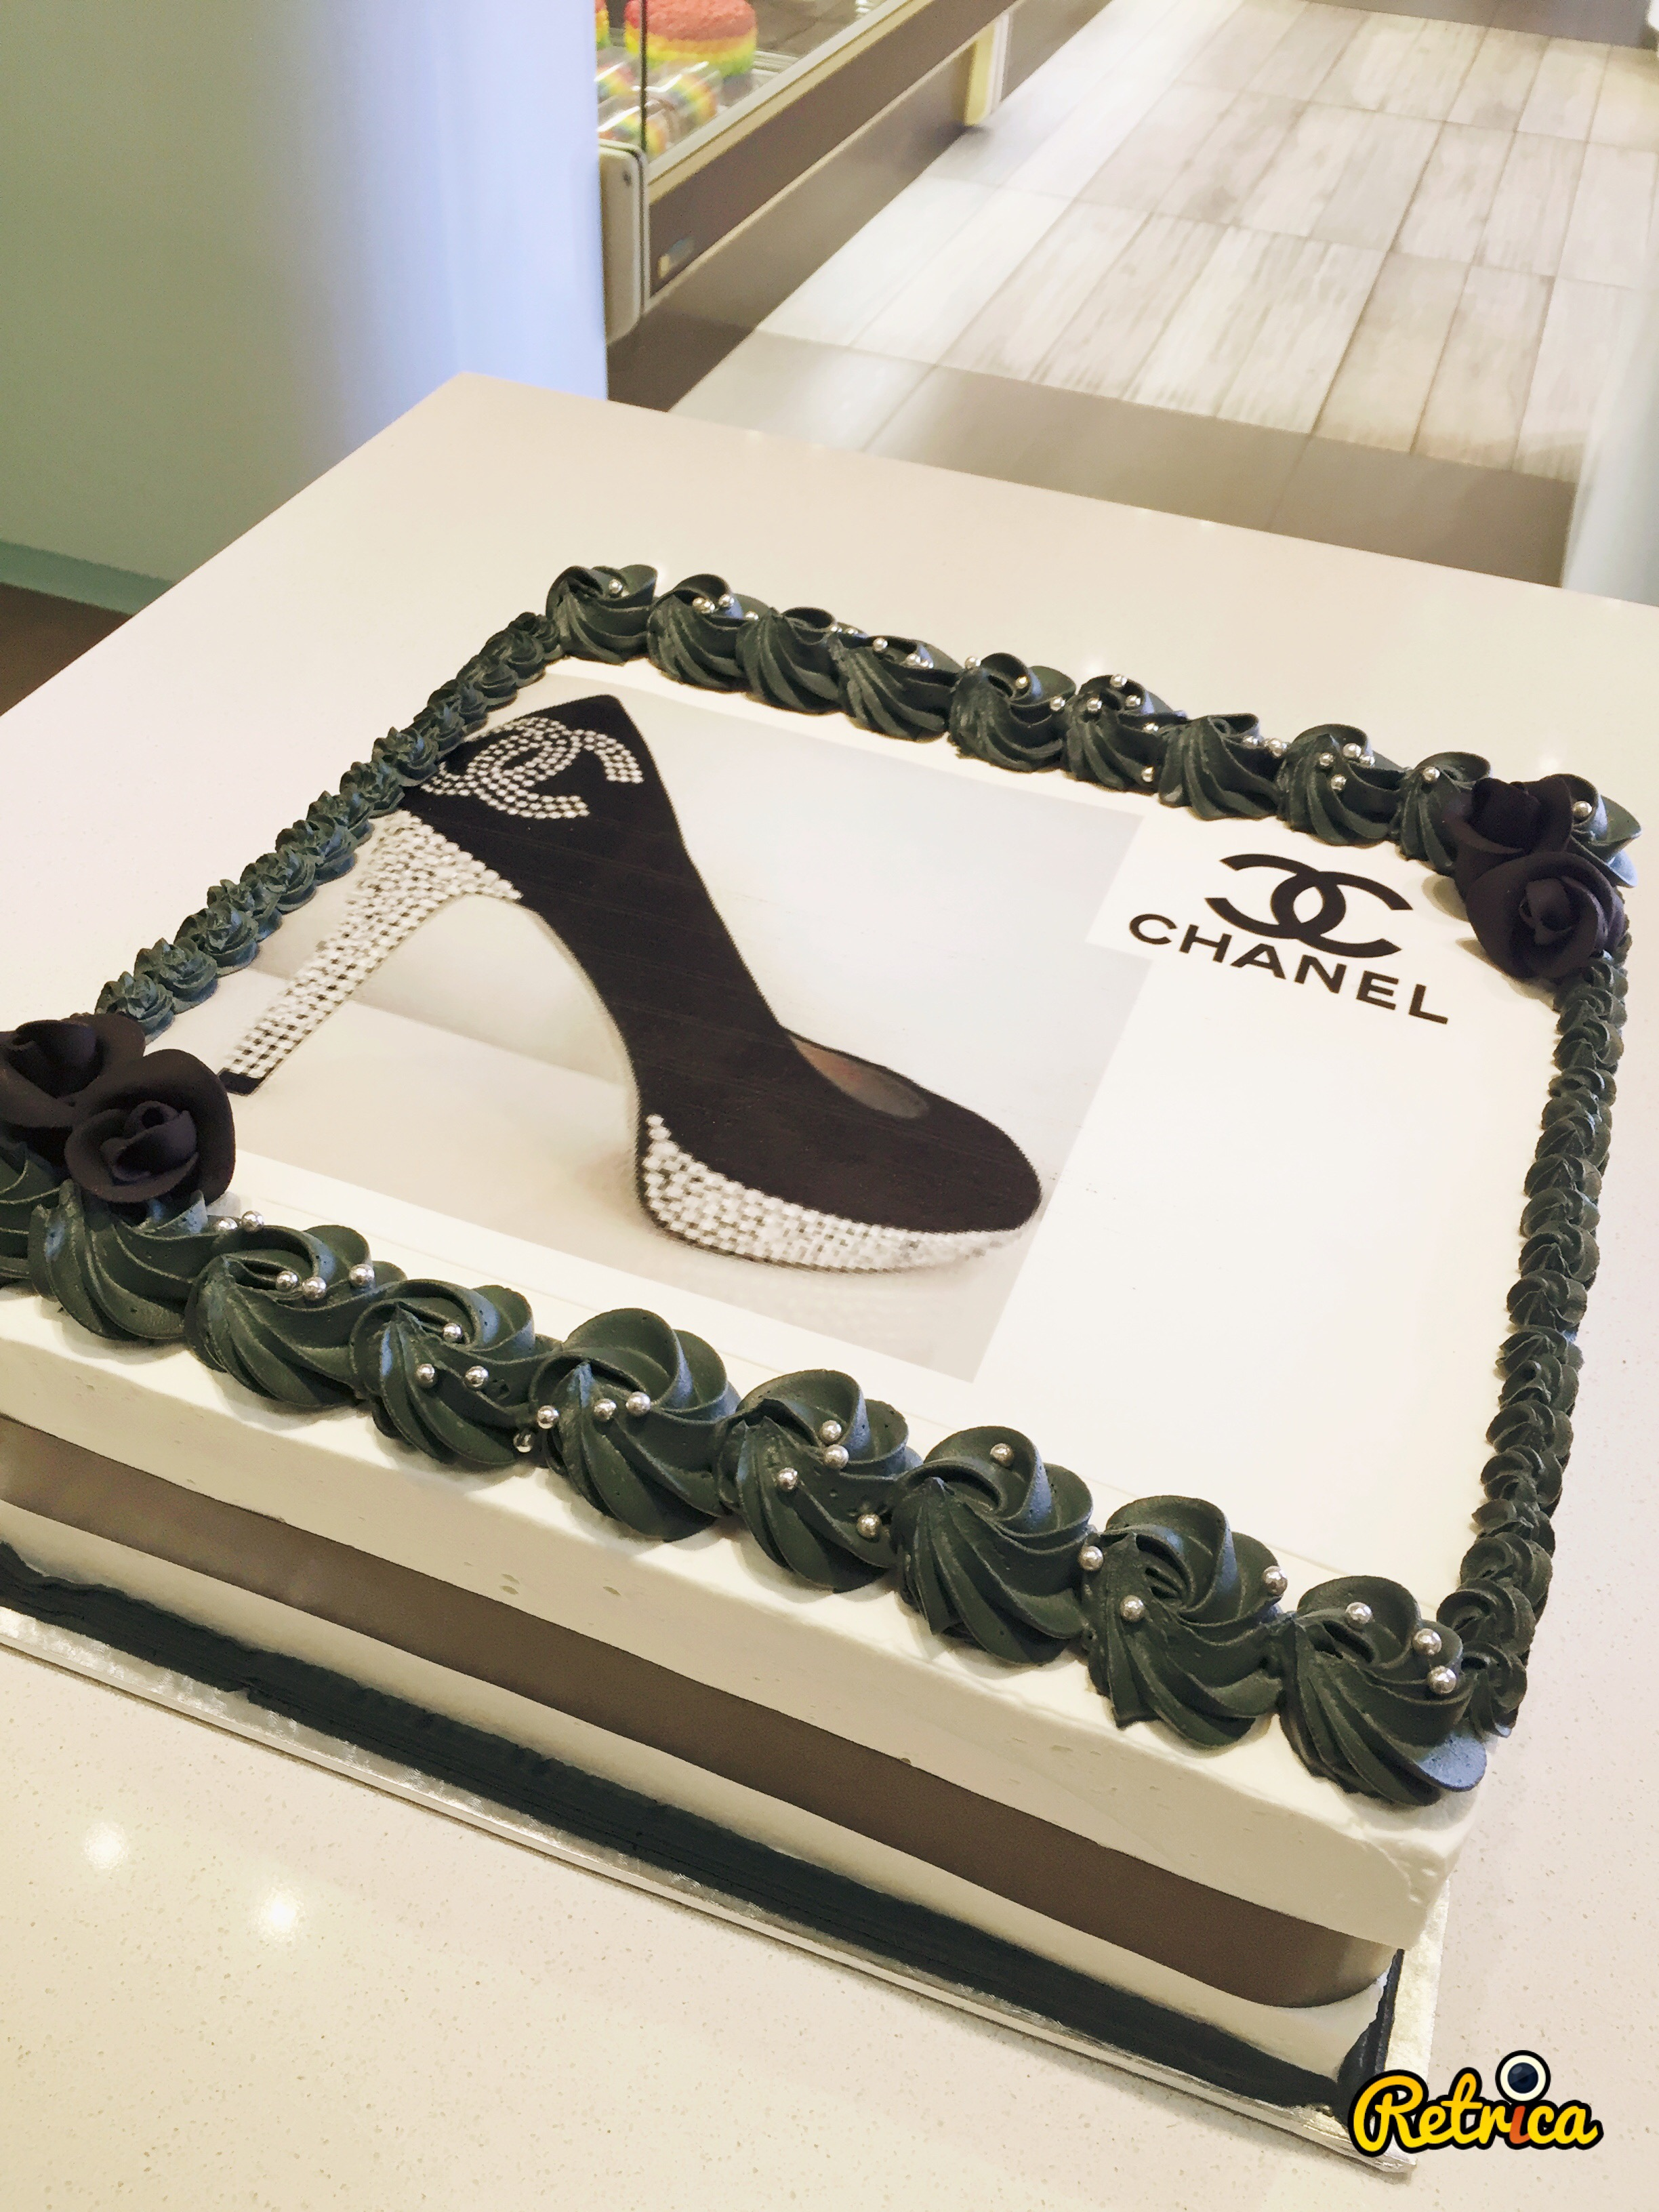 2D Chanel Rice paper Birthday